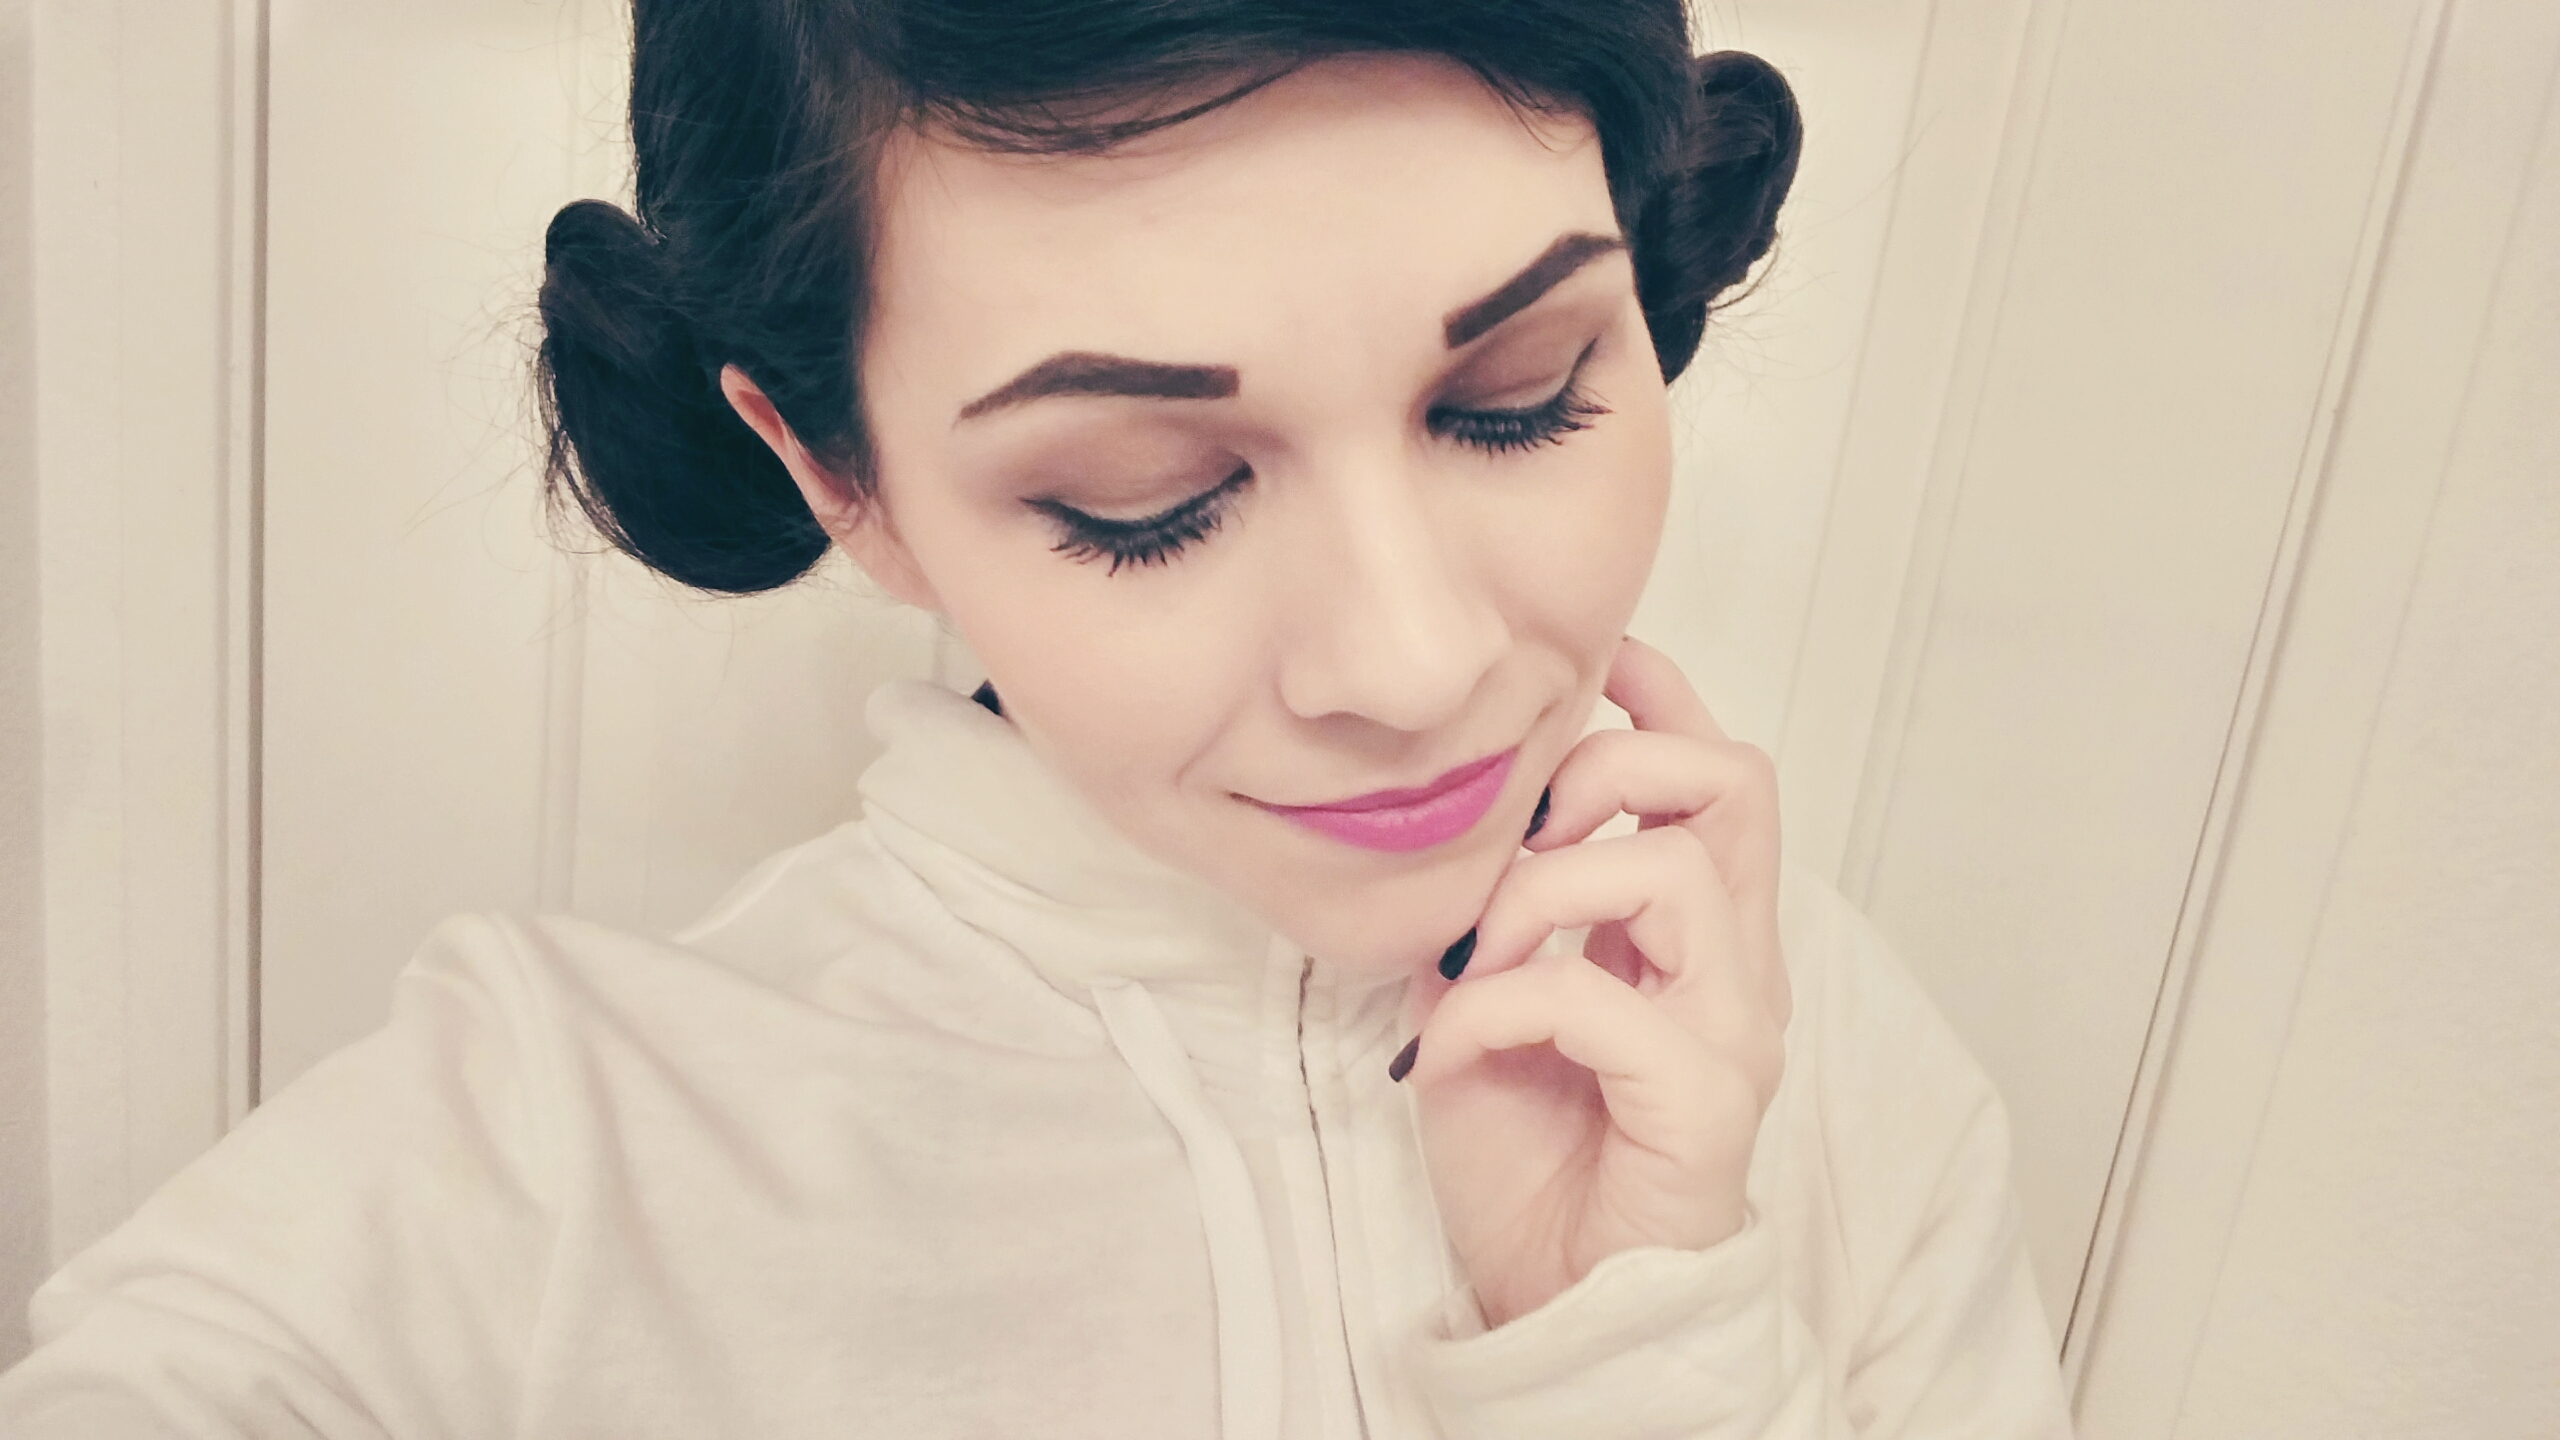 Princess Leia - Small But Fierce | Anakin and His Angel